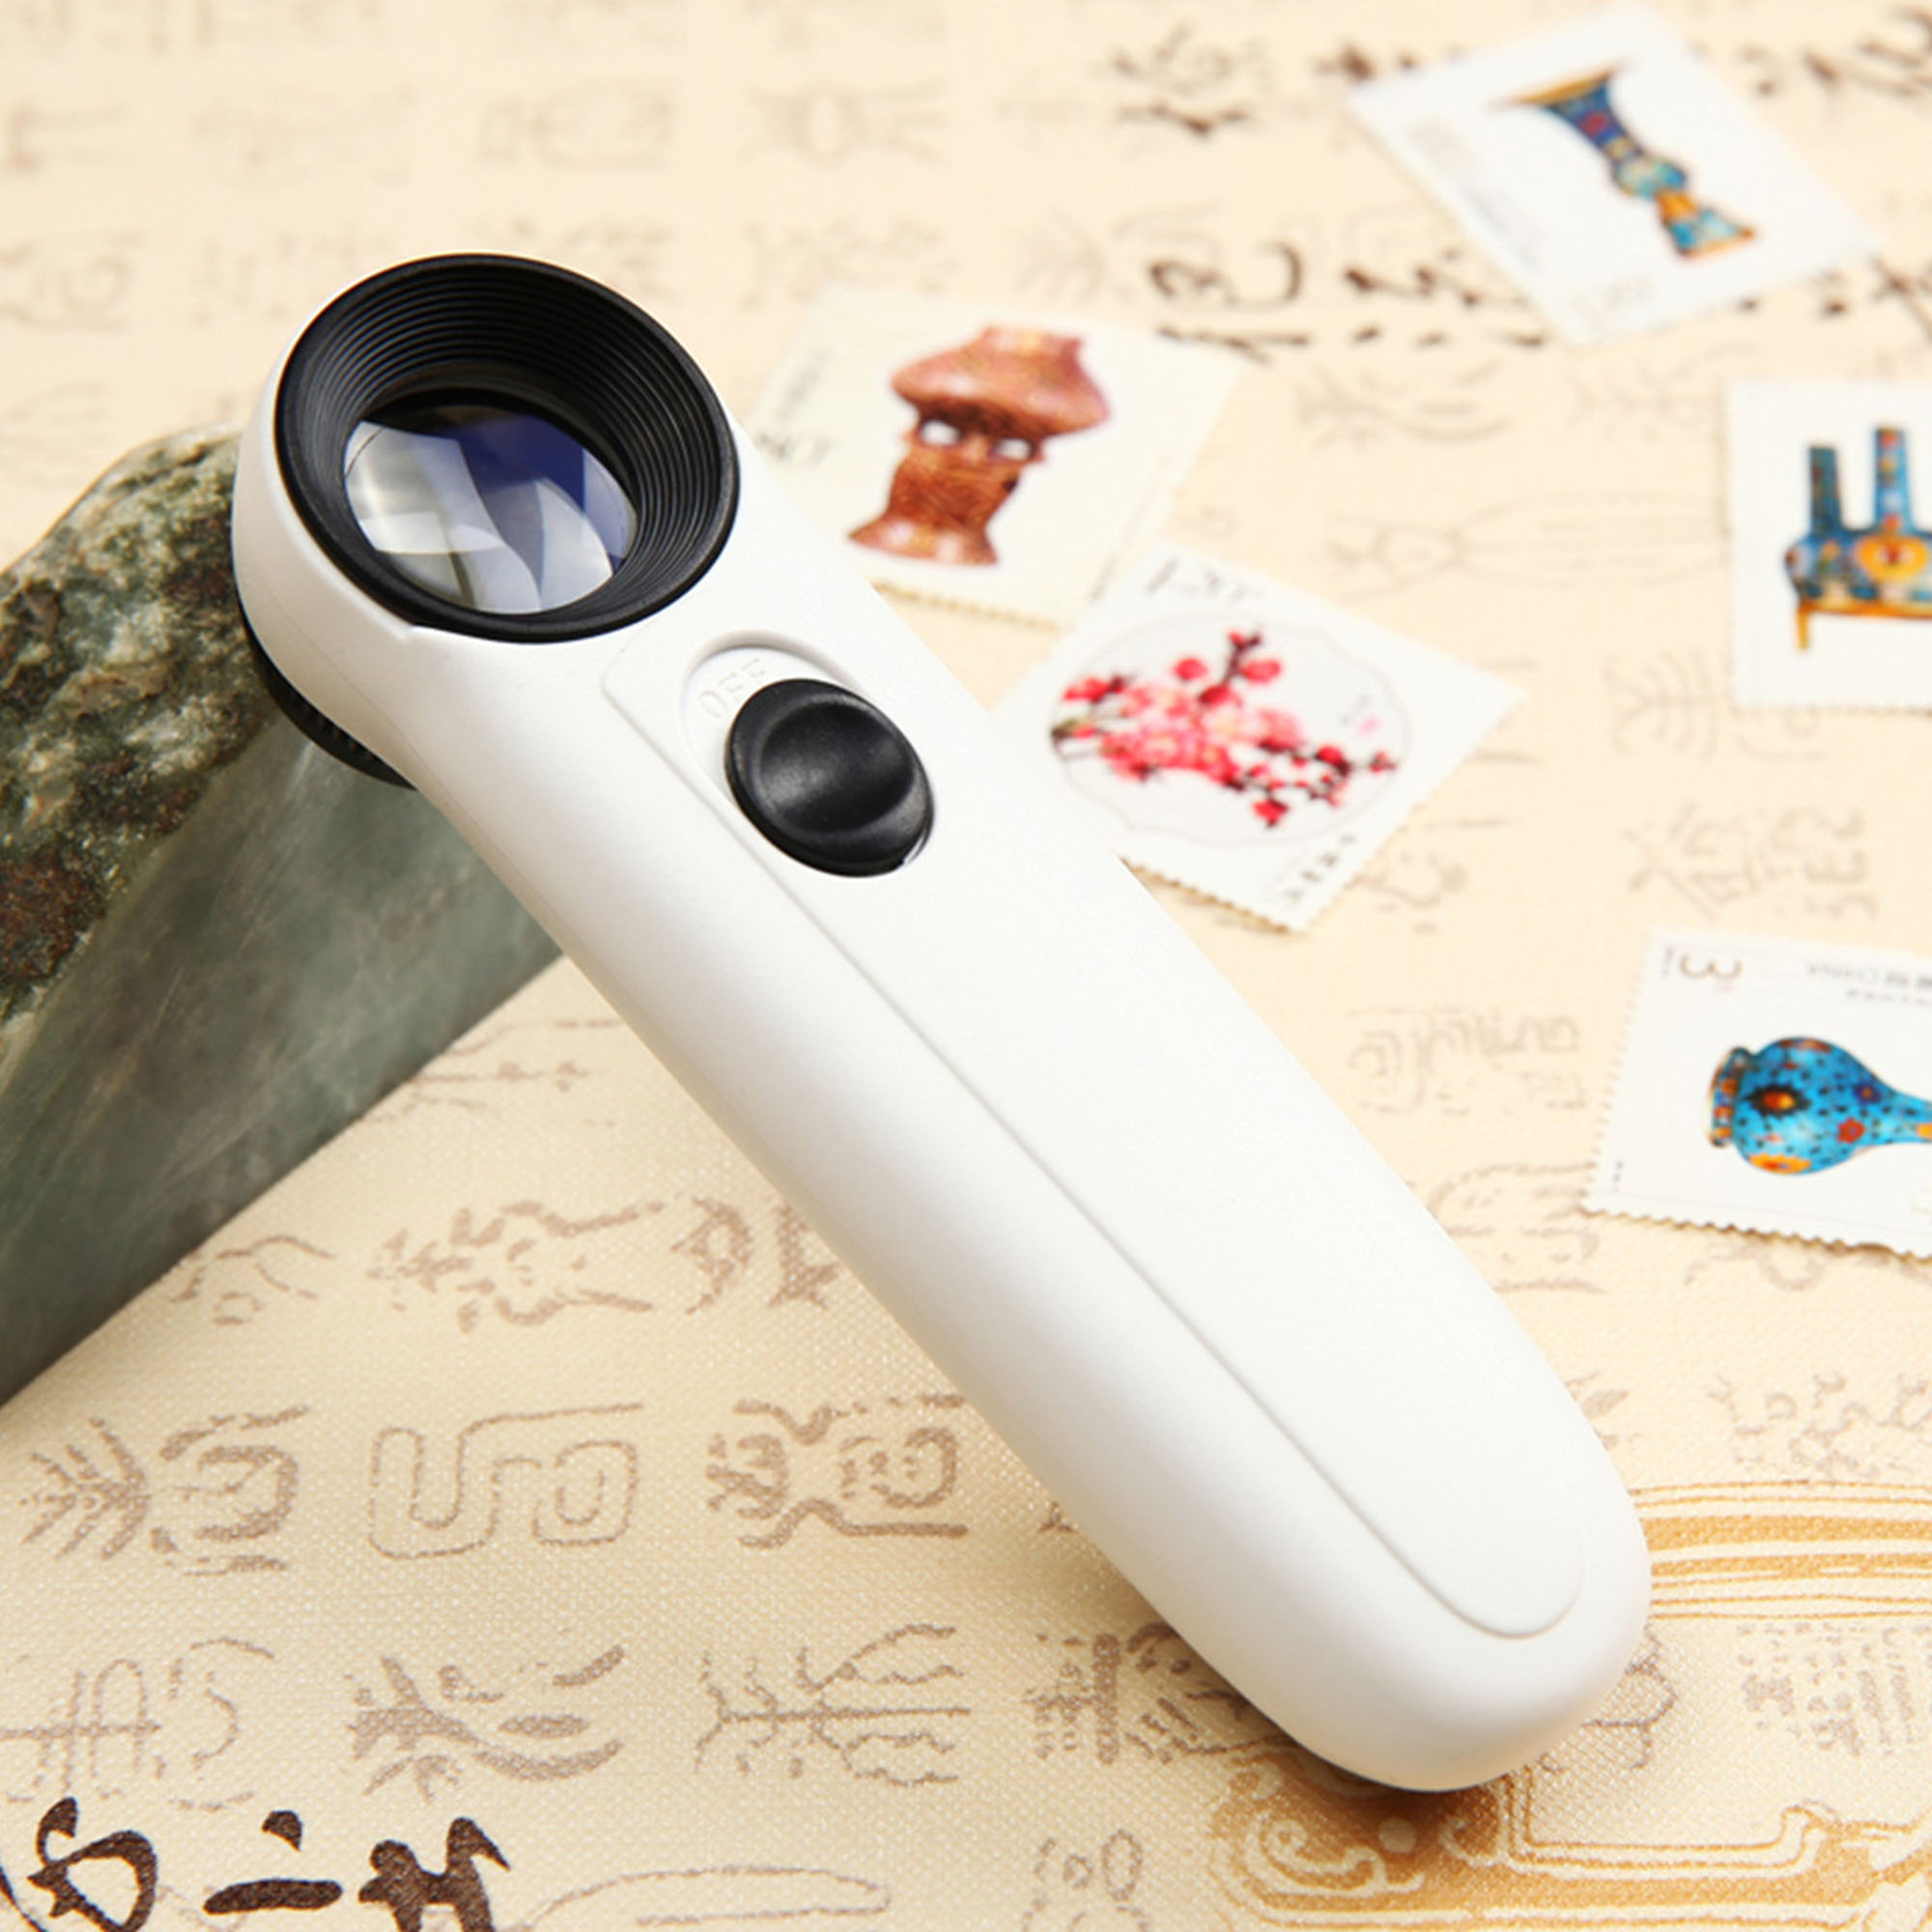 40X 2 LED Light Magnifier Jeweler Loupe Loop Magnifying Glass Jewelry Eye Portable Microscope